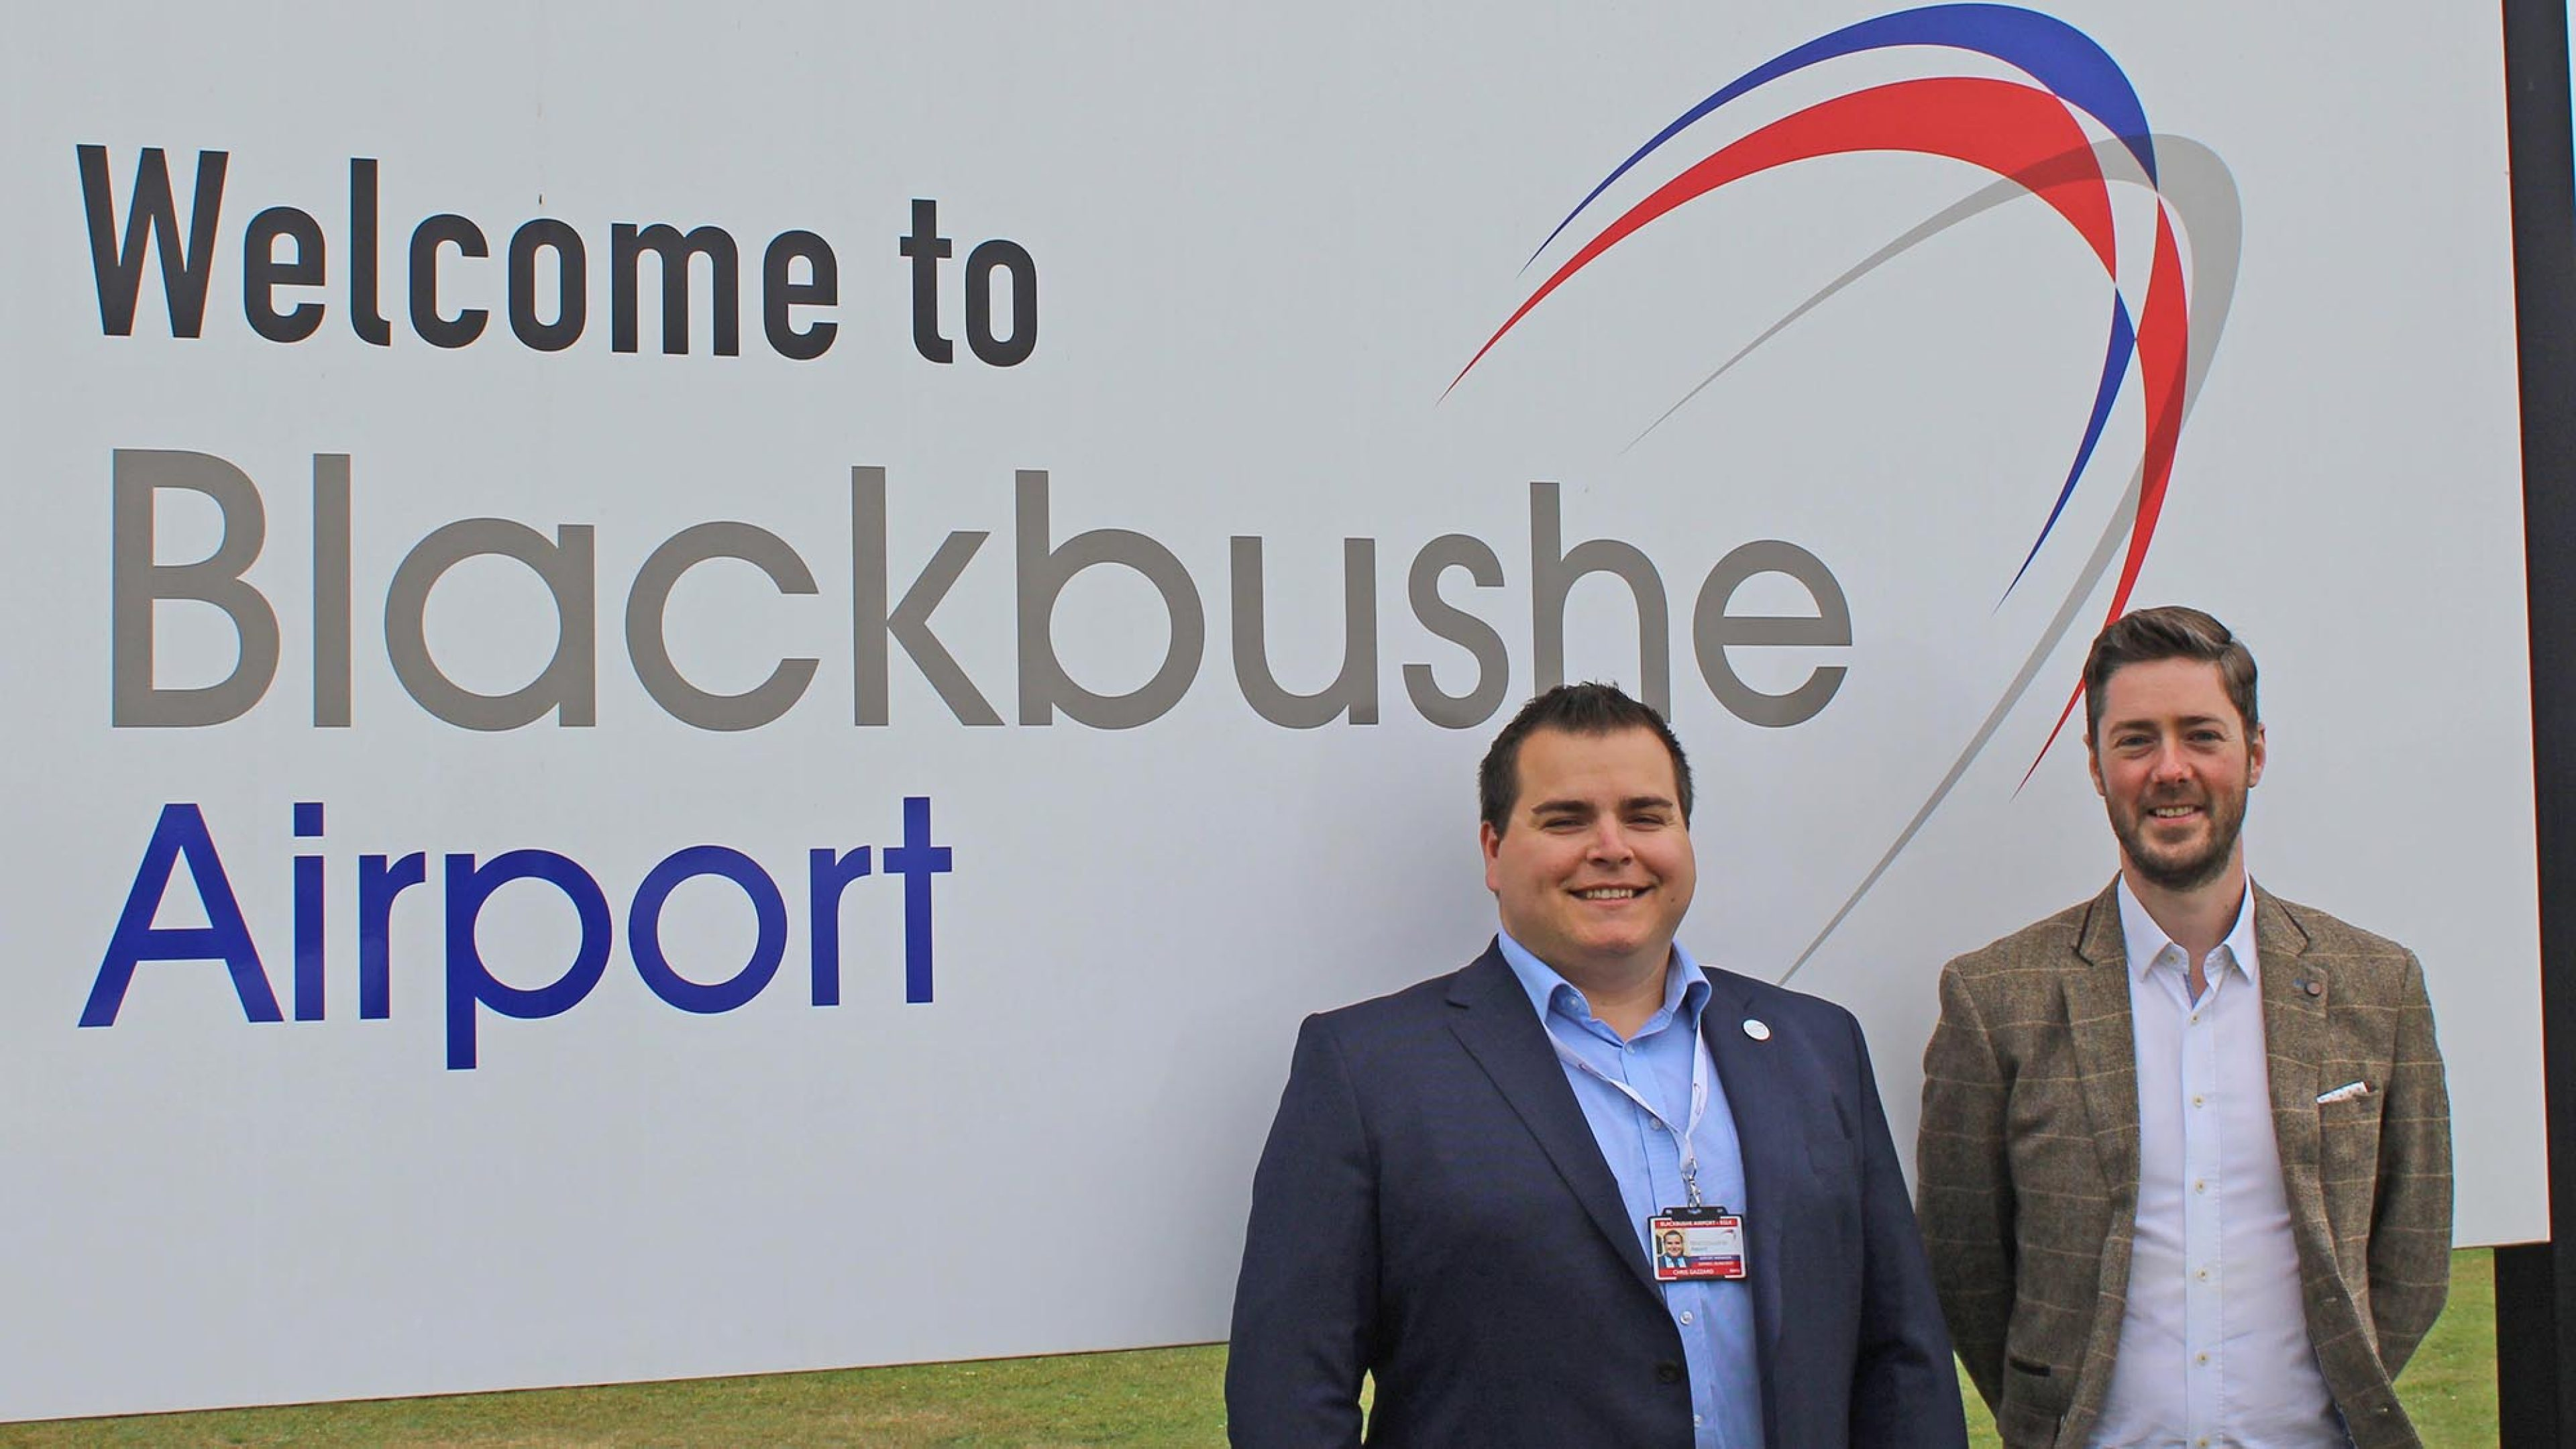 L-R: Chris Gazzard, Blackbushe Airport manager and Russell Halley, regional sales manager general aviation Air BP